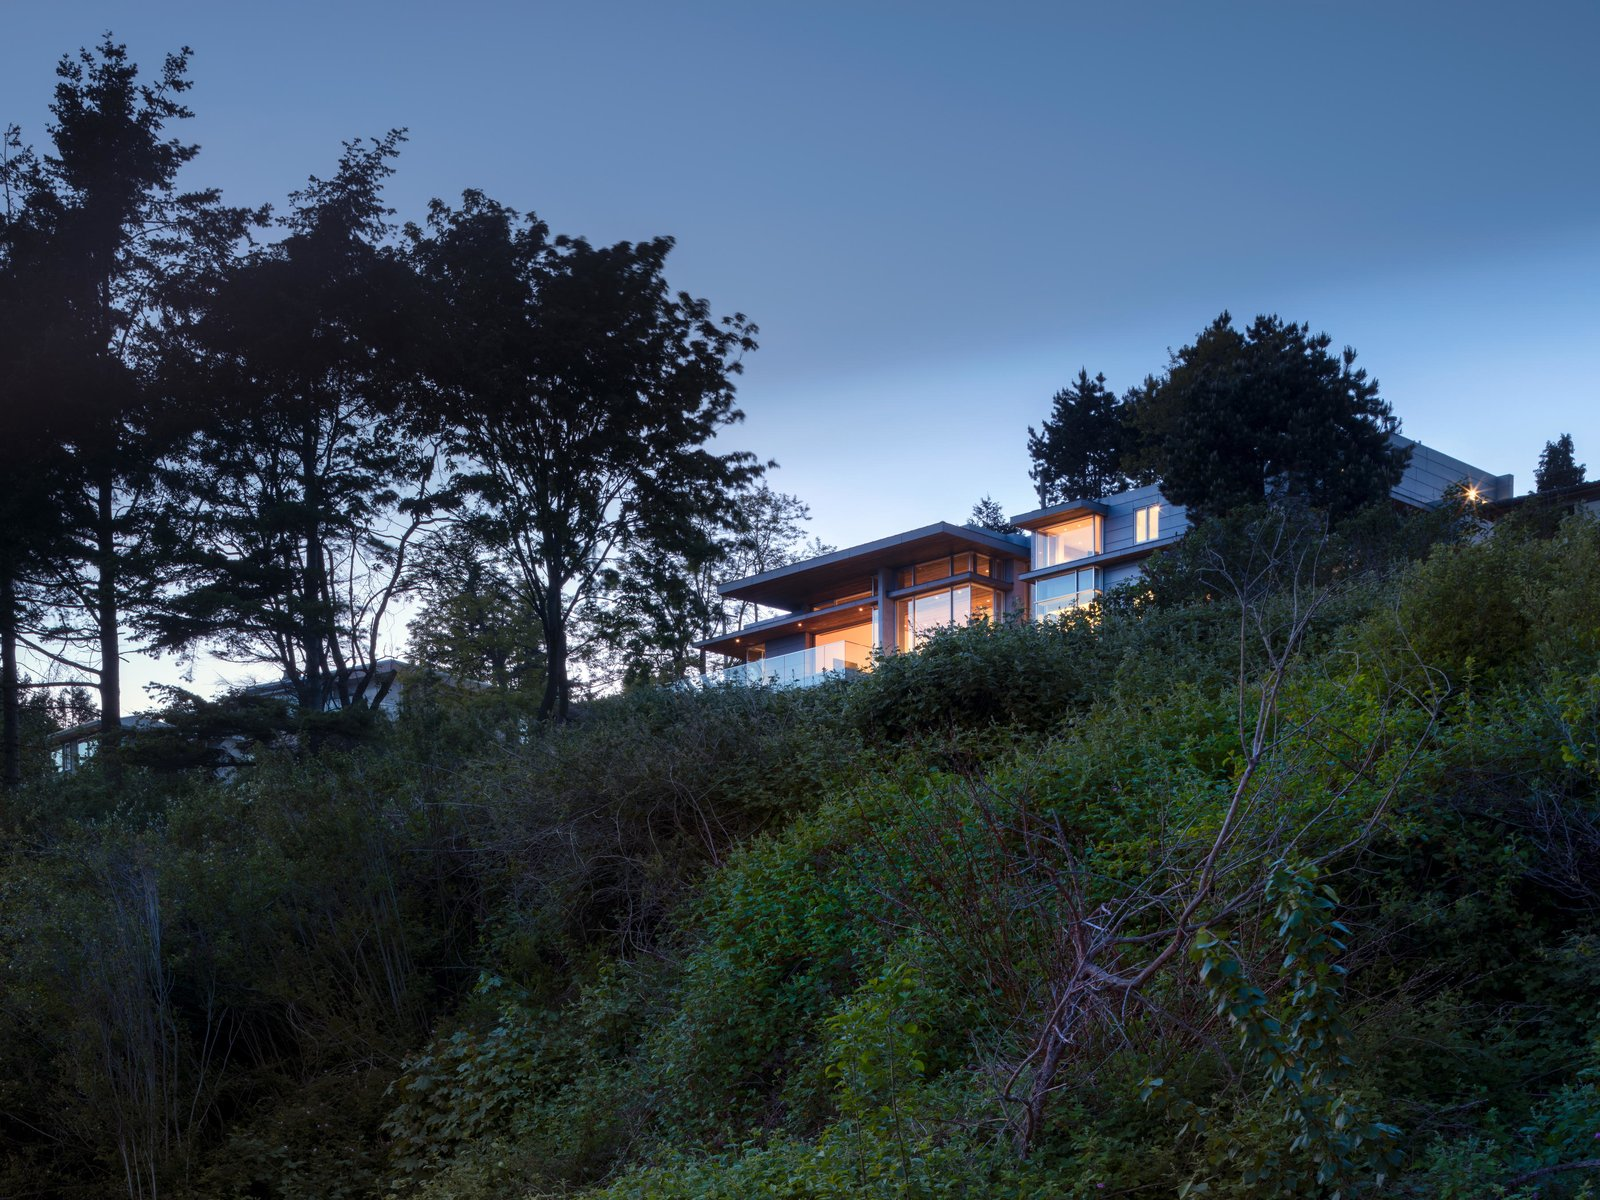 Cliff Dwelling of White Rock, British Columbia, Canada by Olson Kundig